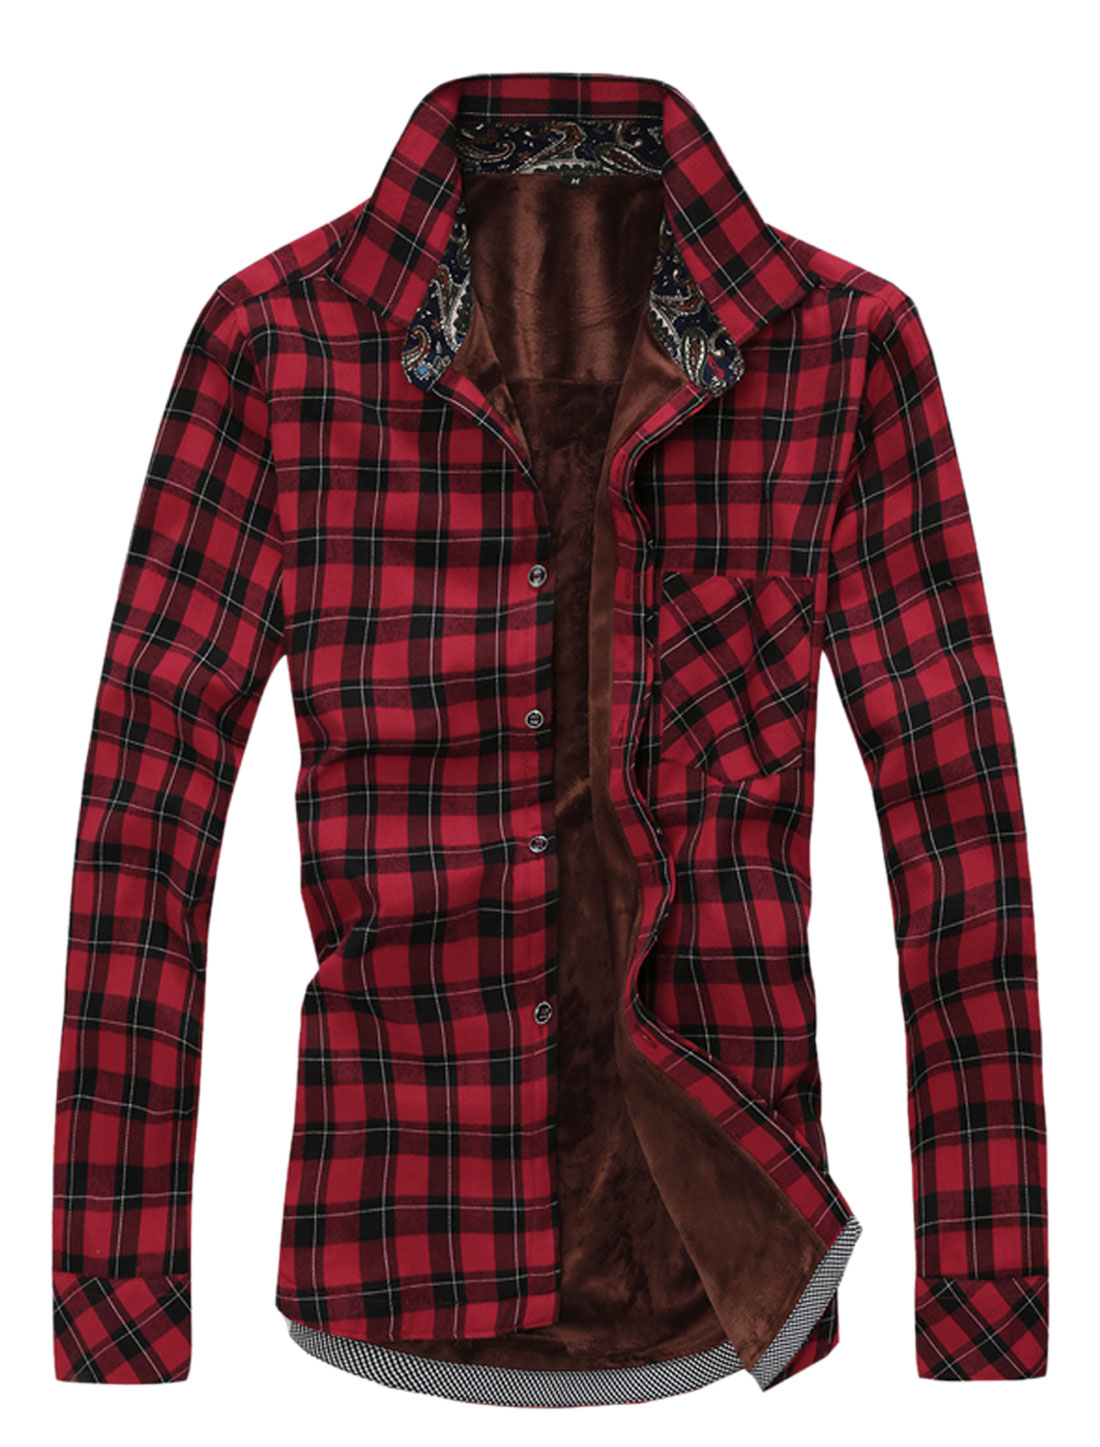 Men Point Collar Plaids Single Chest Pocket Trendy Shirt Red M